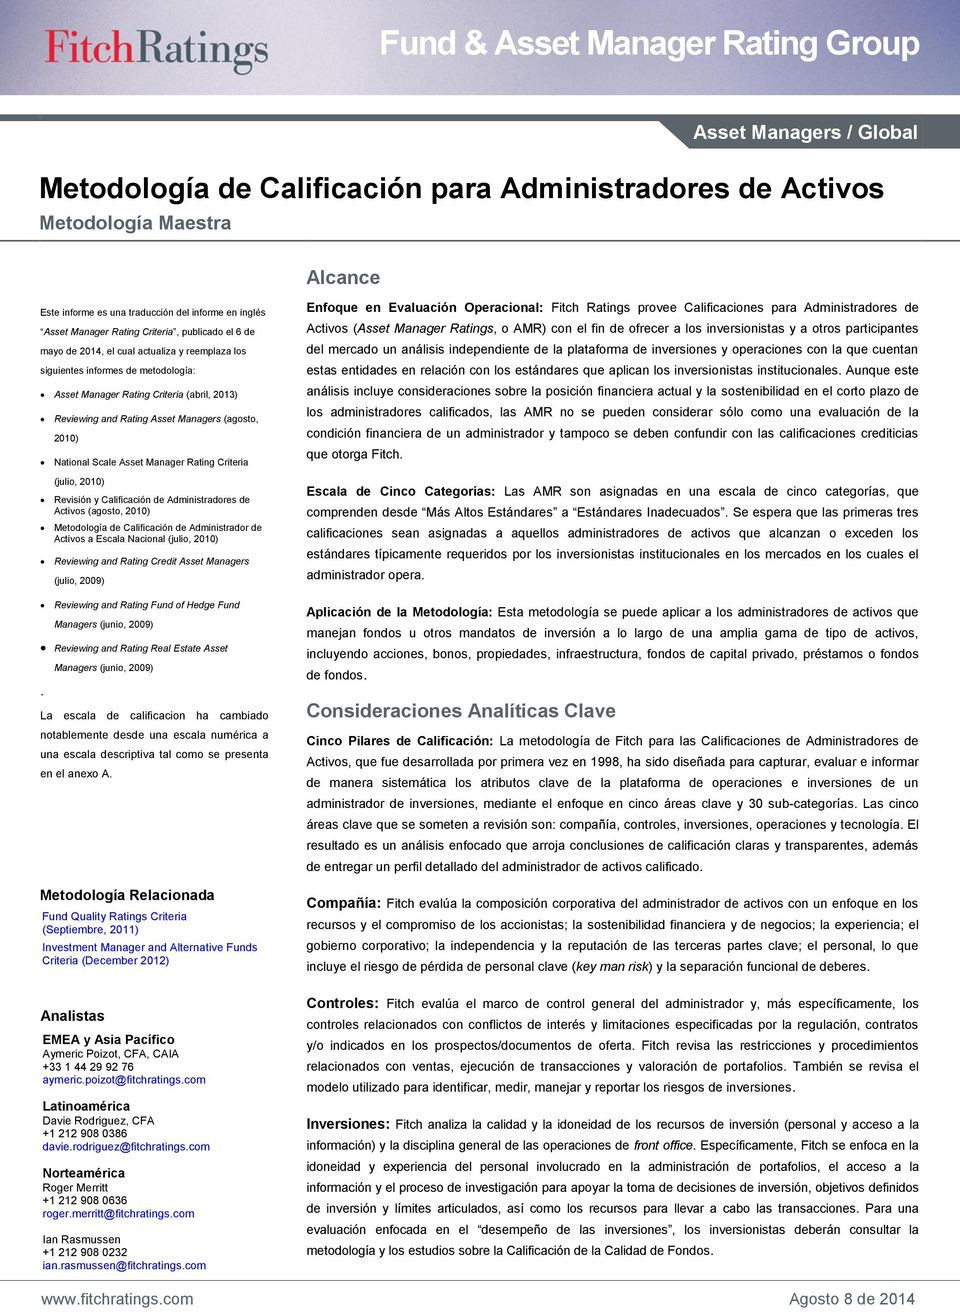 Calificación de Administradres de Activs (agst, 2010) Metdlgía de Calificación de Administradr de Activs a Escala Nacinal (juli, 2010) Reviewing and Rating Credit Asset Managers (juli, 2009)